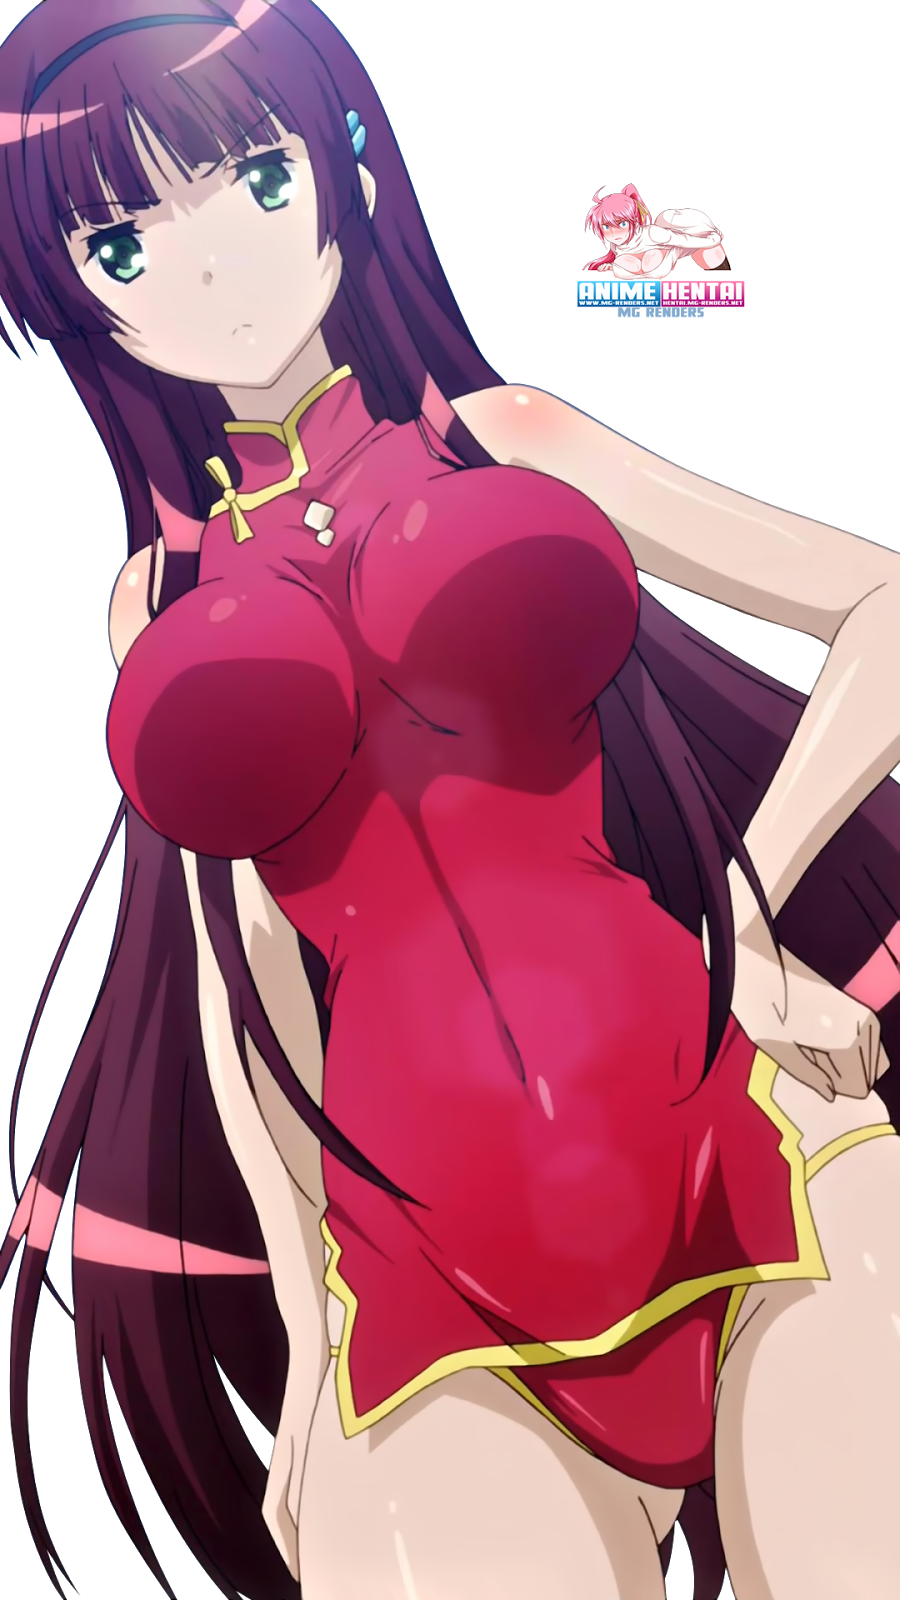 Tags: Anime, Render,  Seiken Tsukai no World Break,  Urushibara Shizuno, PNG, Image, Picture